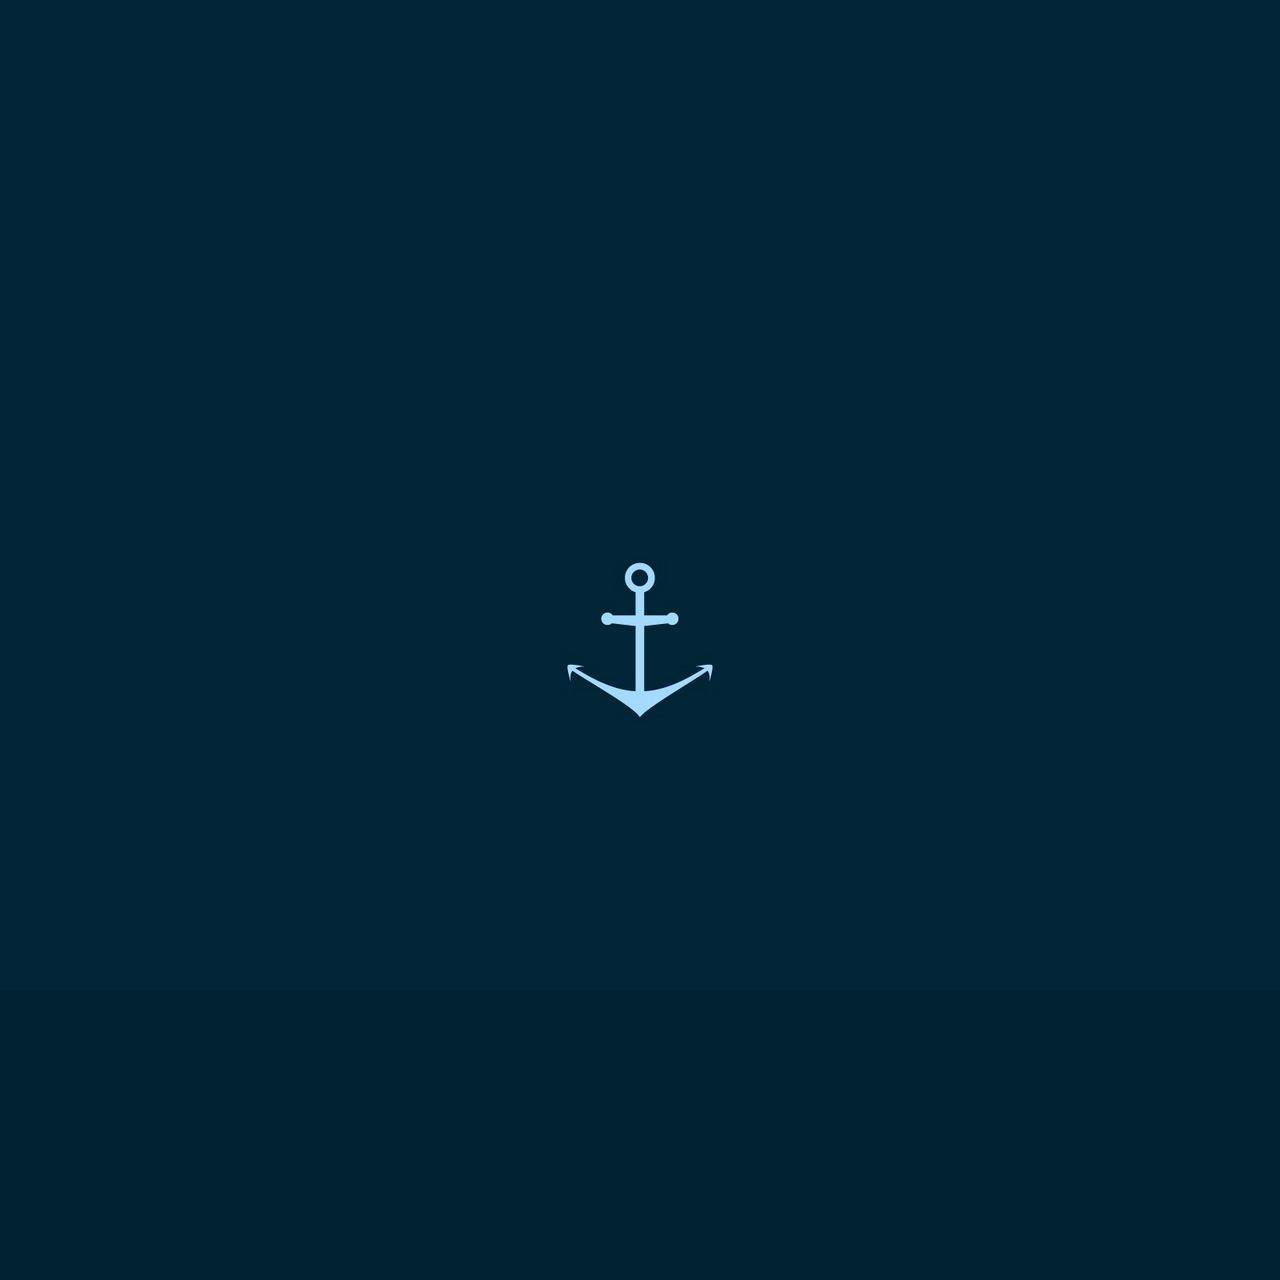 1280x1280 Wallpaper anchor, drawing, vector, dark